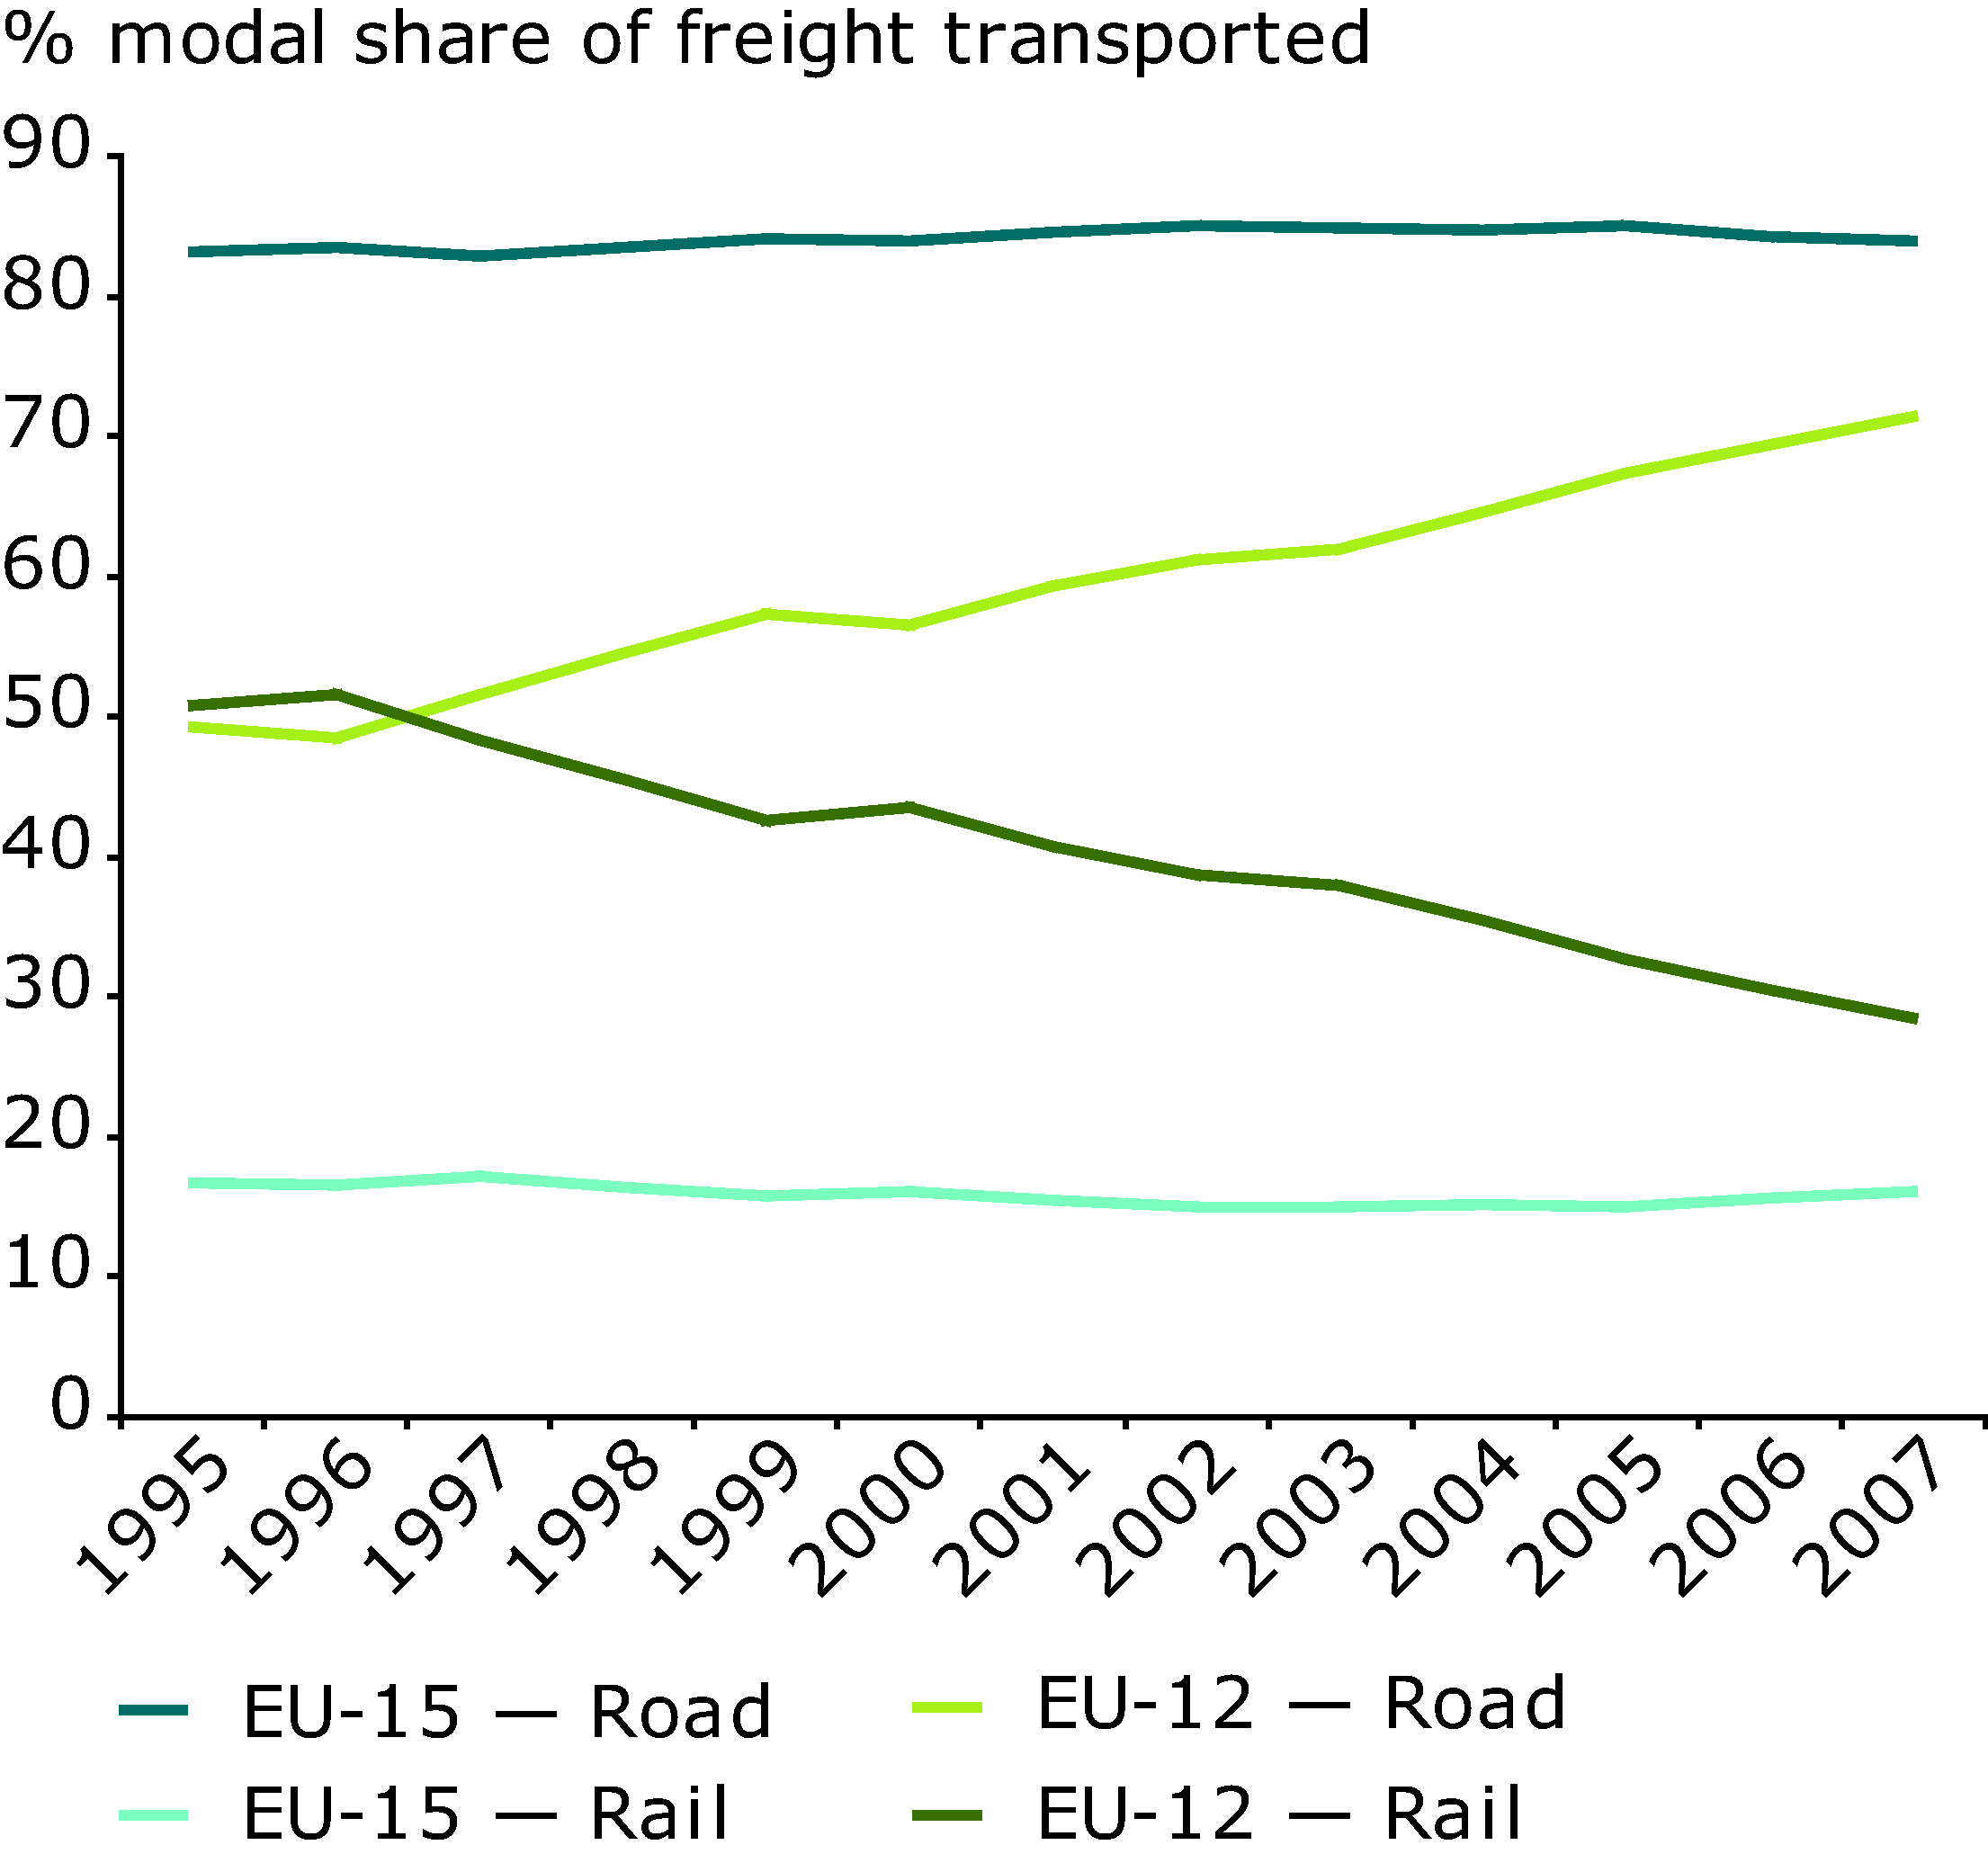 Freight transport by mode